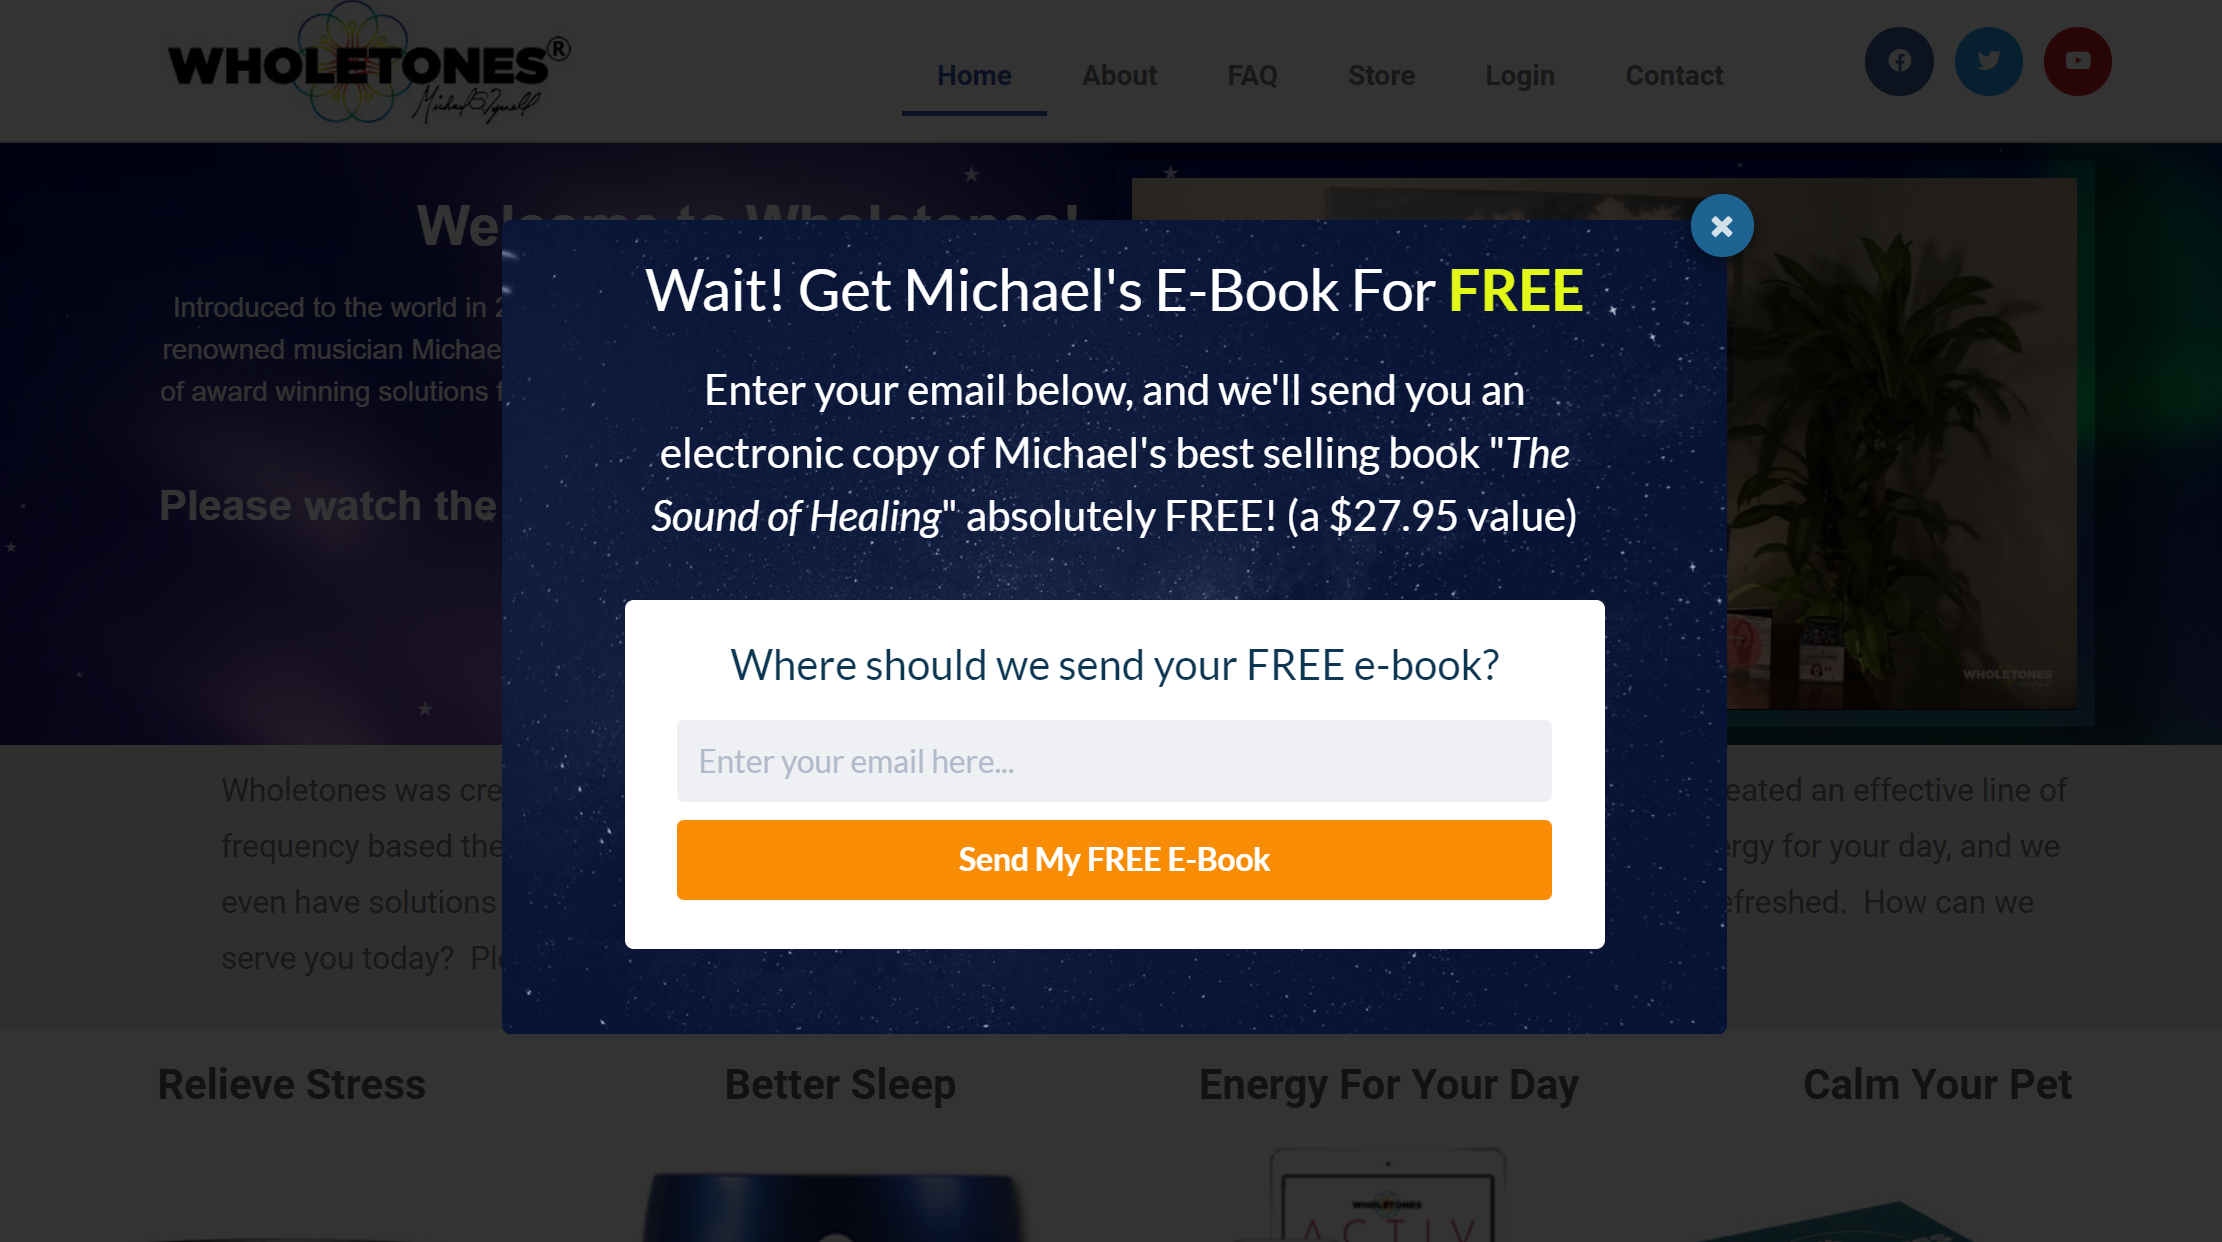 Exit-intent popup offering free ebook